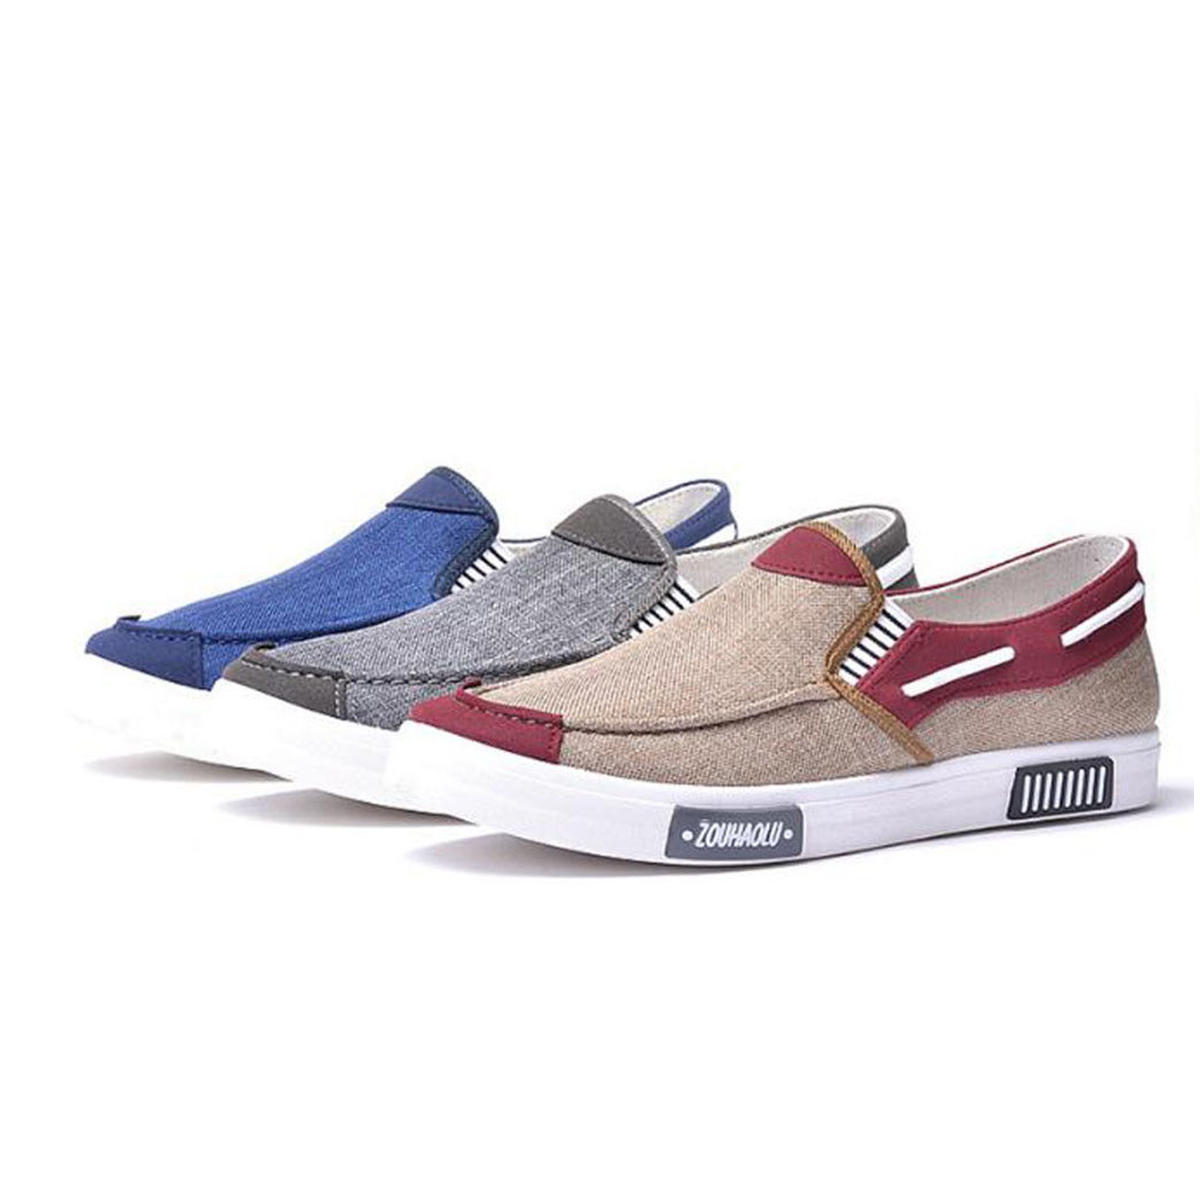 Men's Canvas Shoes Casual Sports Light Breathable Comfortable Sports Shoes Sneakers - 1